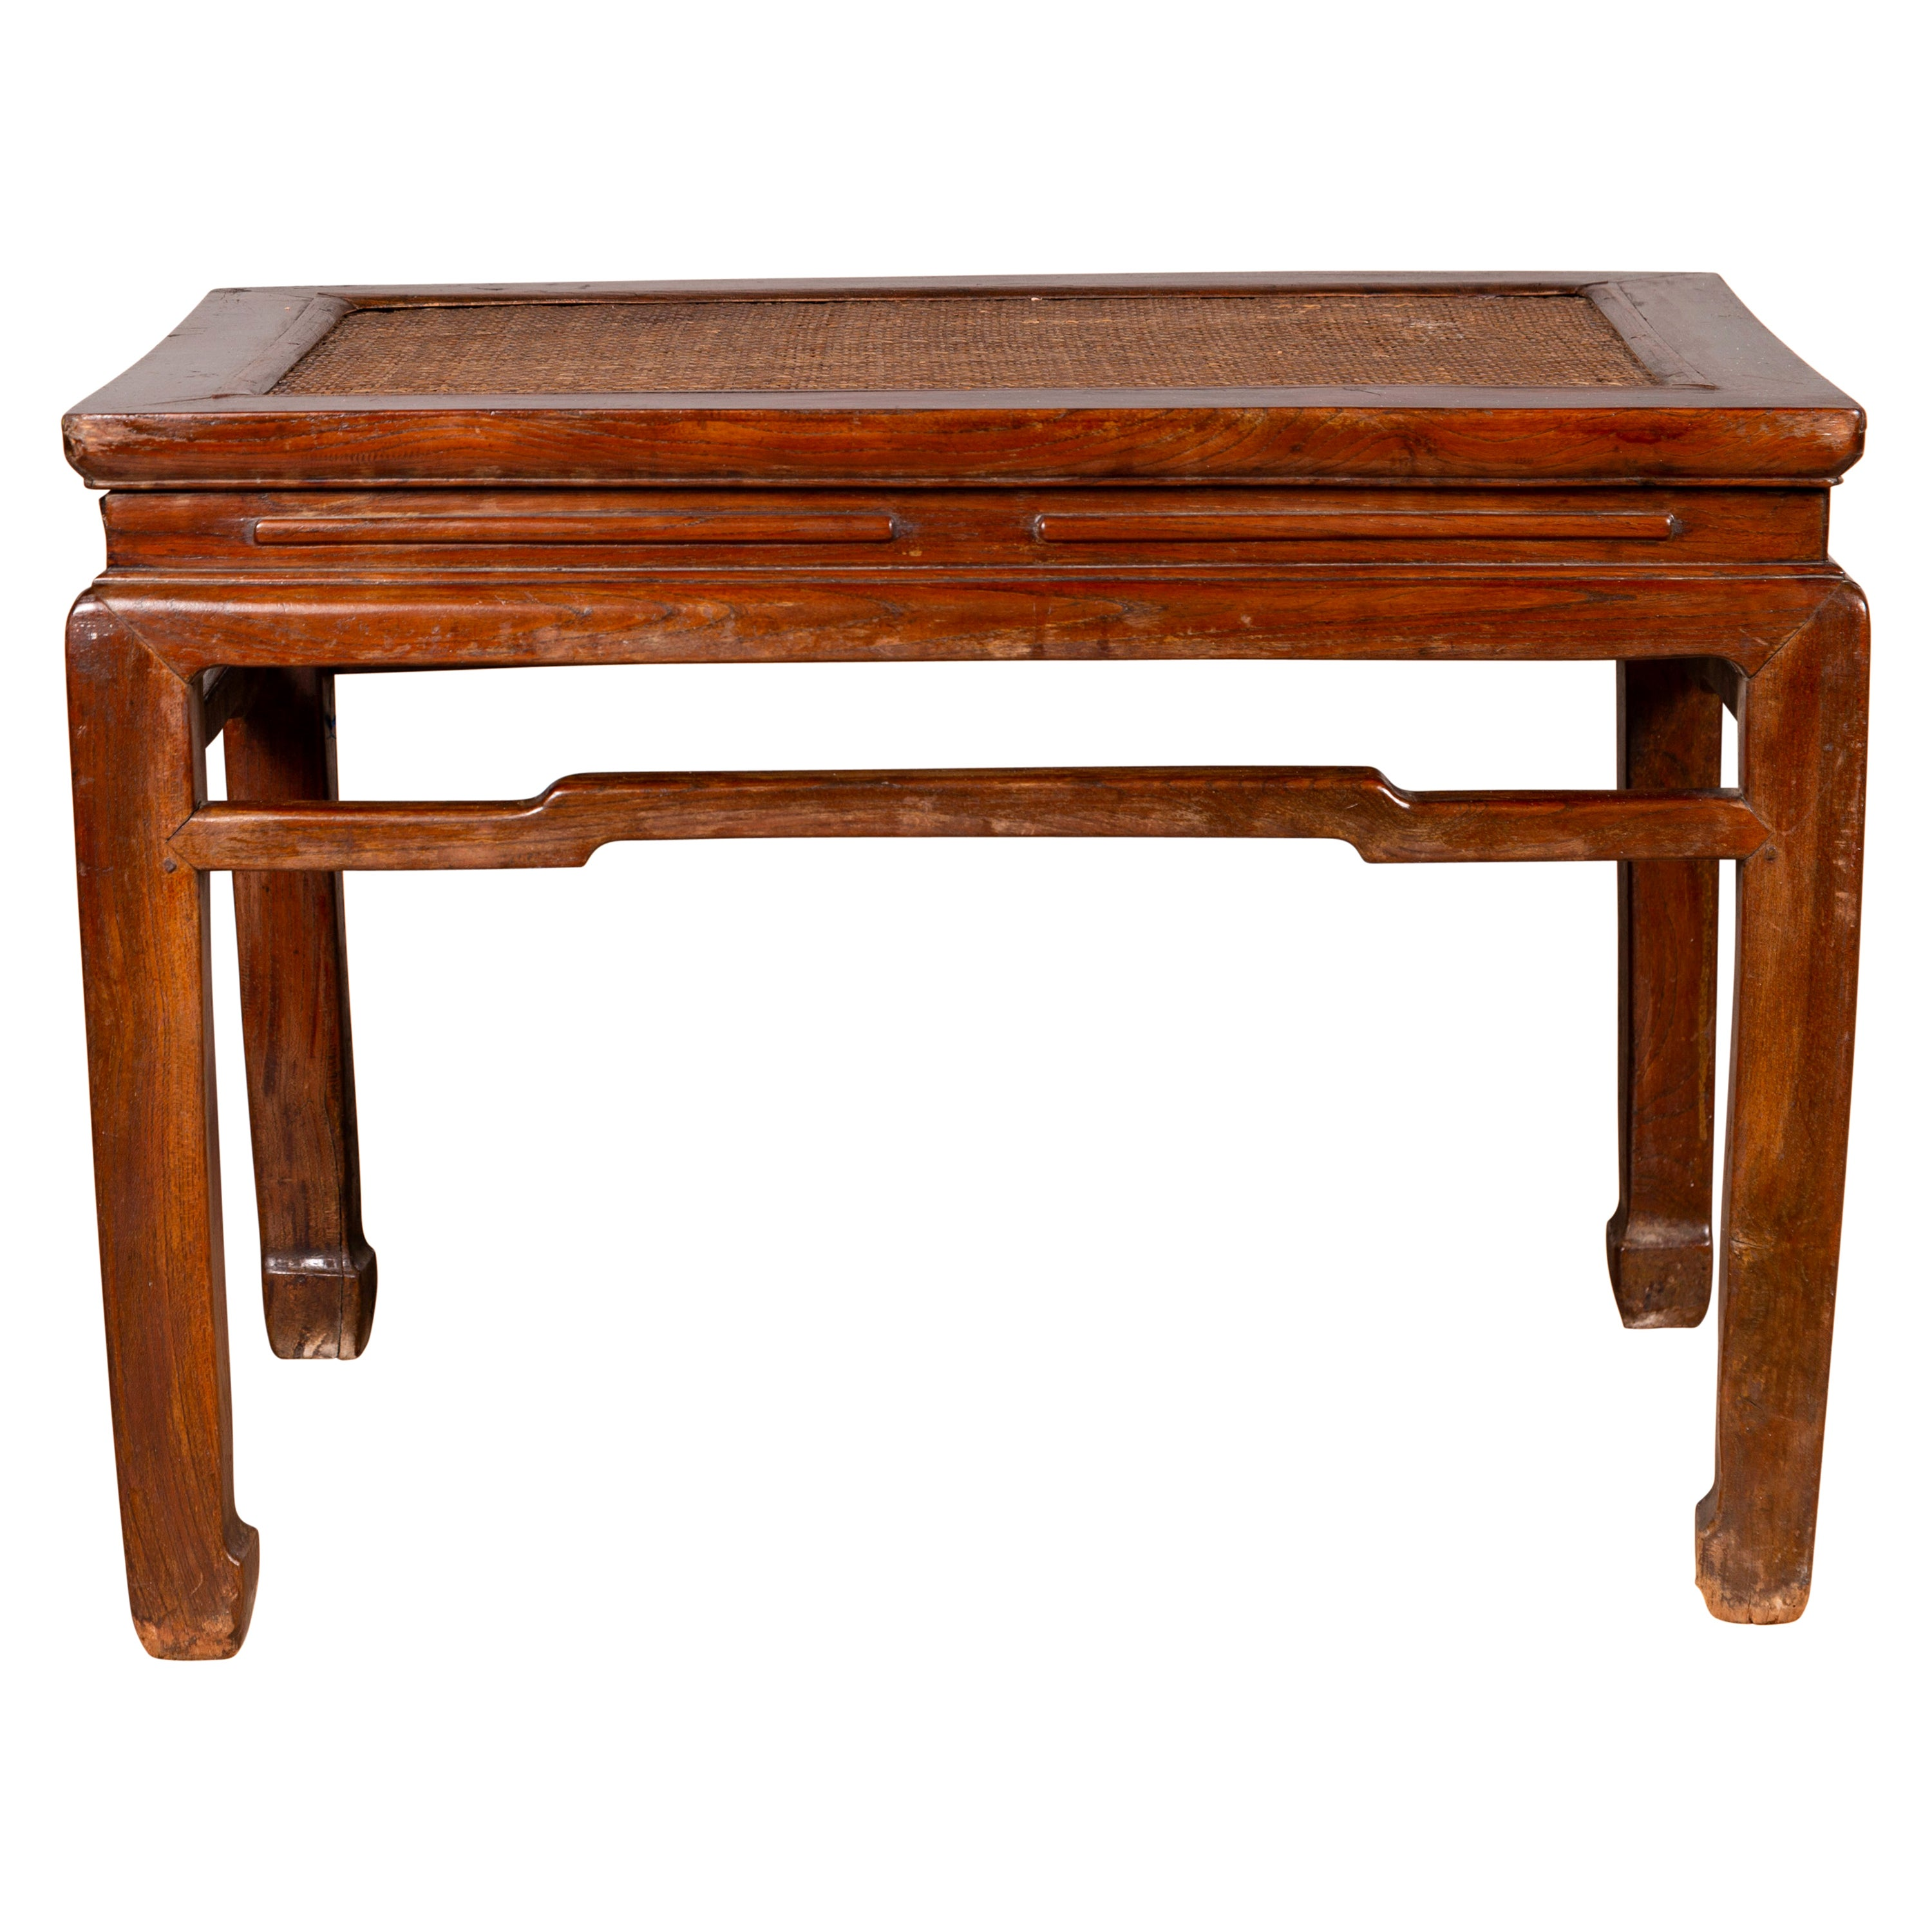 Antique Chinese Ming Dynasty Style Waisted Side Table with Woven Rattan Top